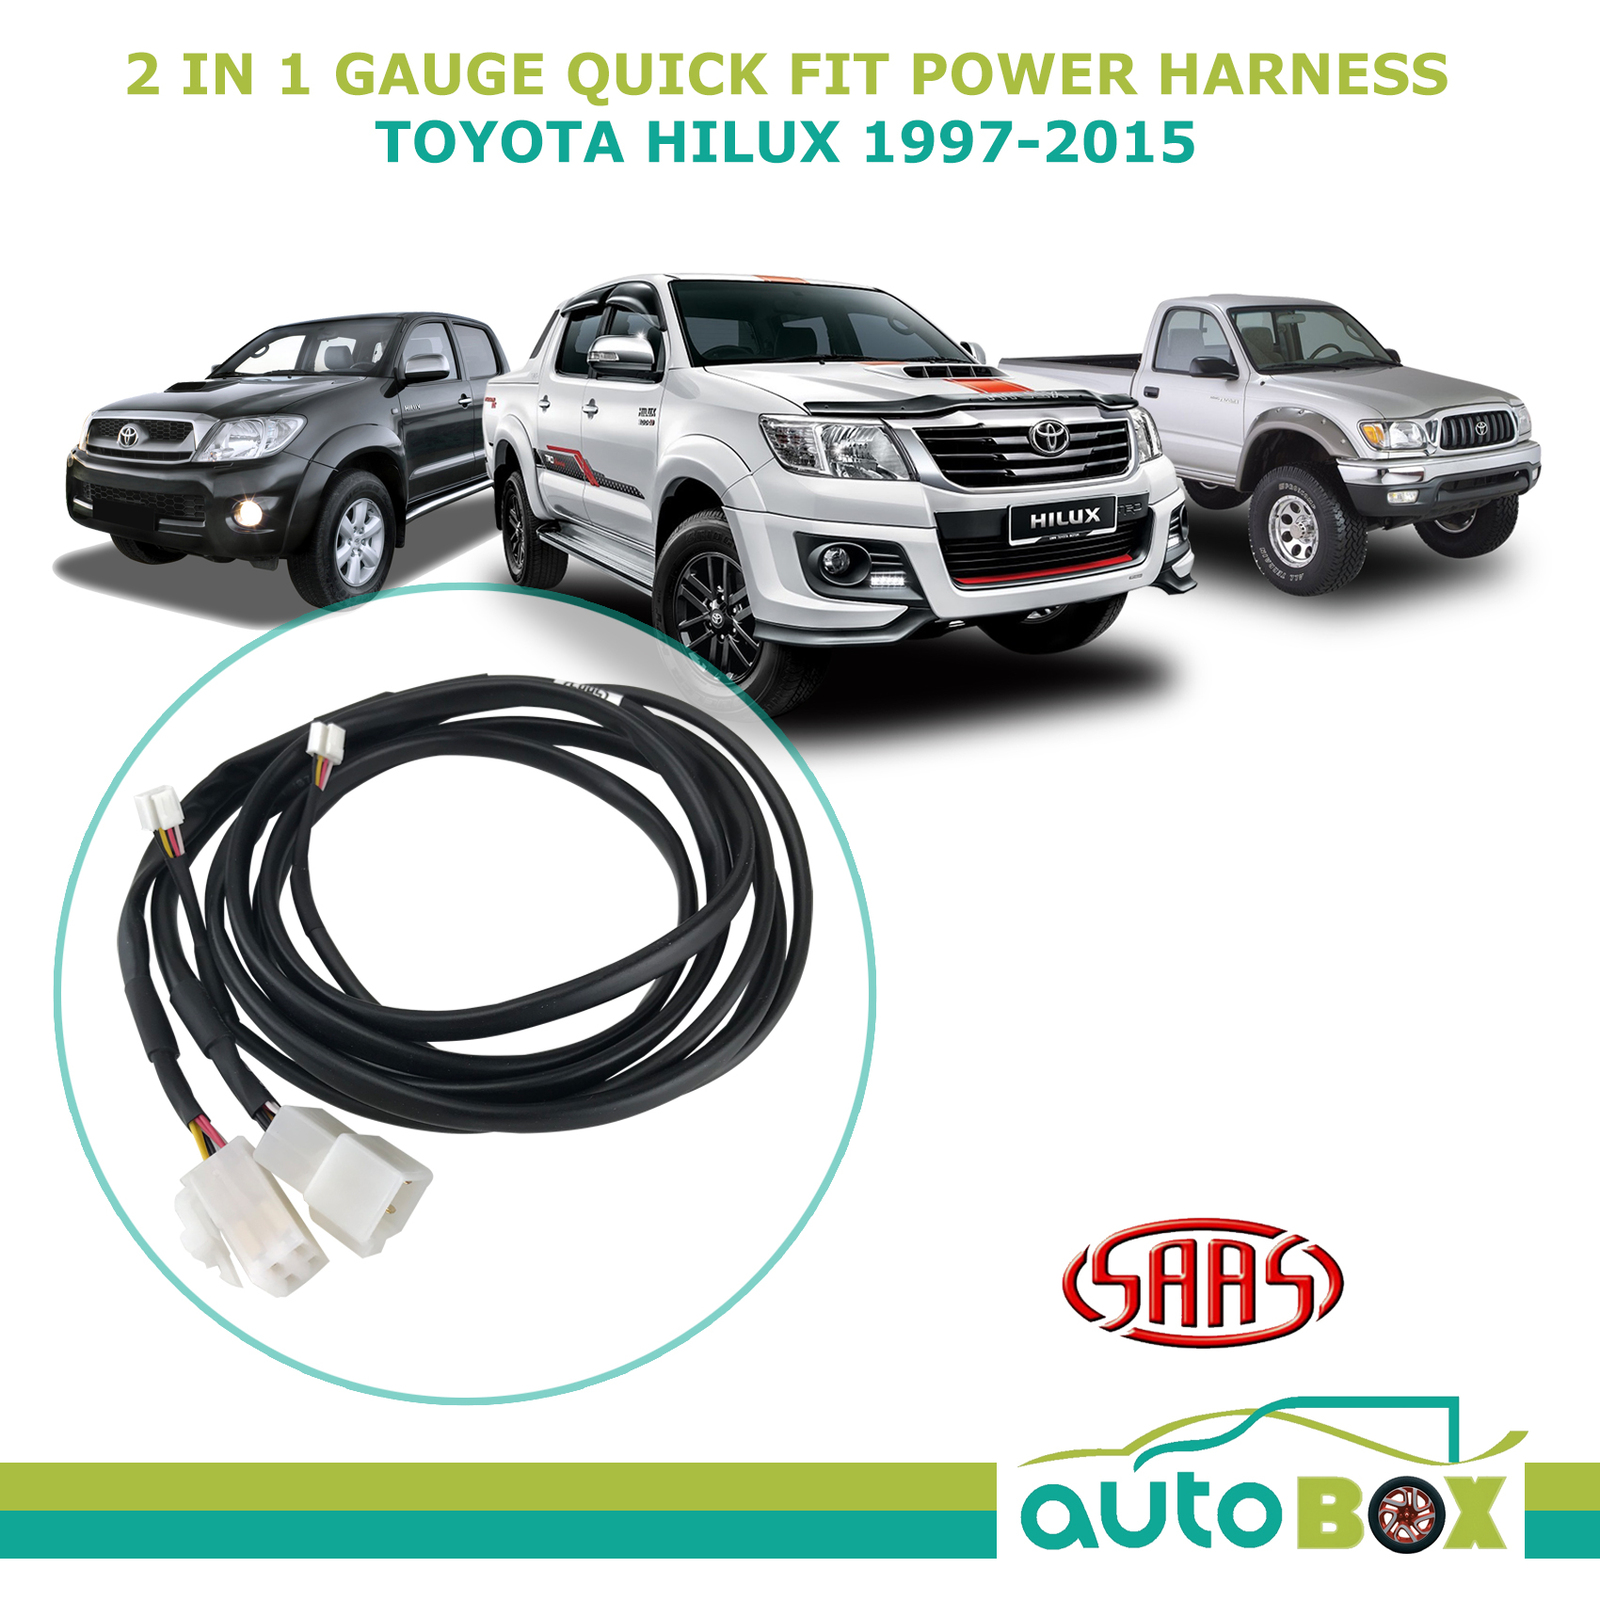 hight resolution of saas trax 2 in 1 gauge quick fit power harness for toyota hilux 1997 2015